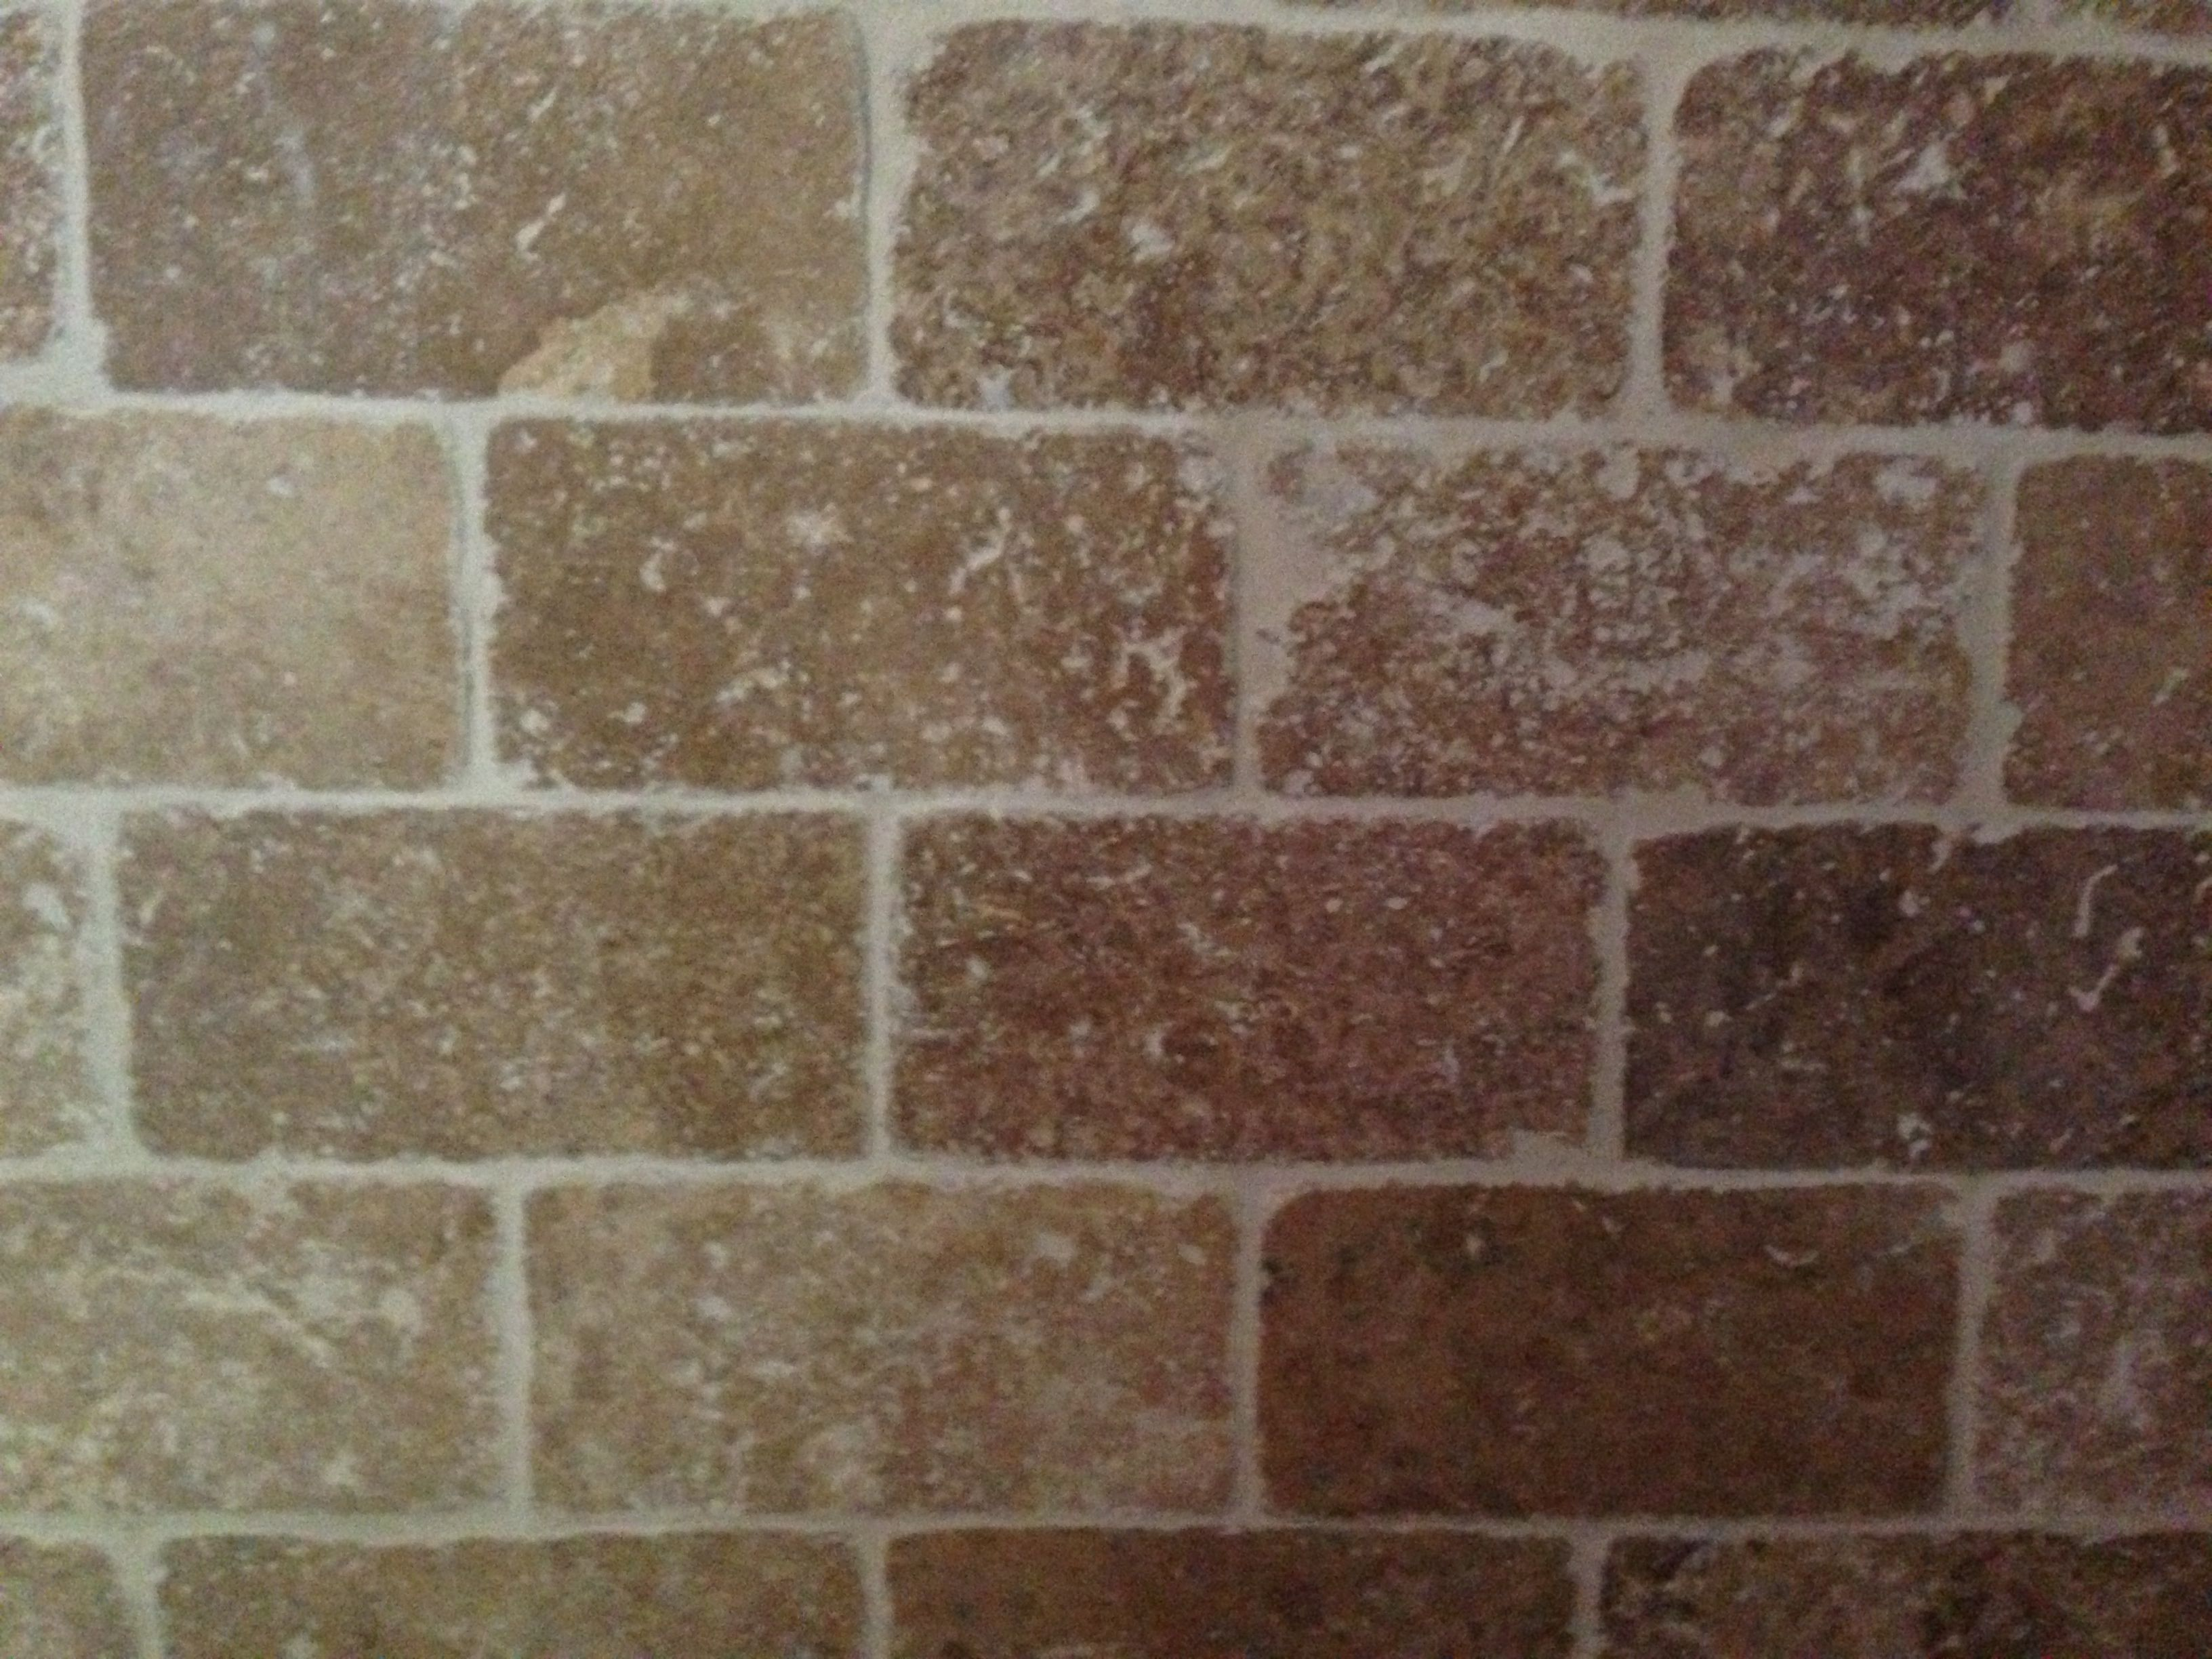 Natural Stone Tile Backsplash Diy Home Improvement